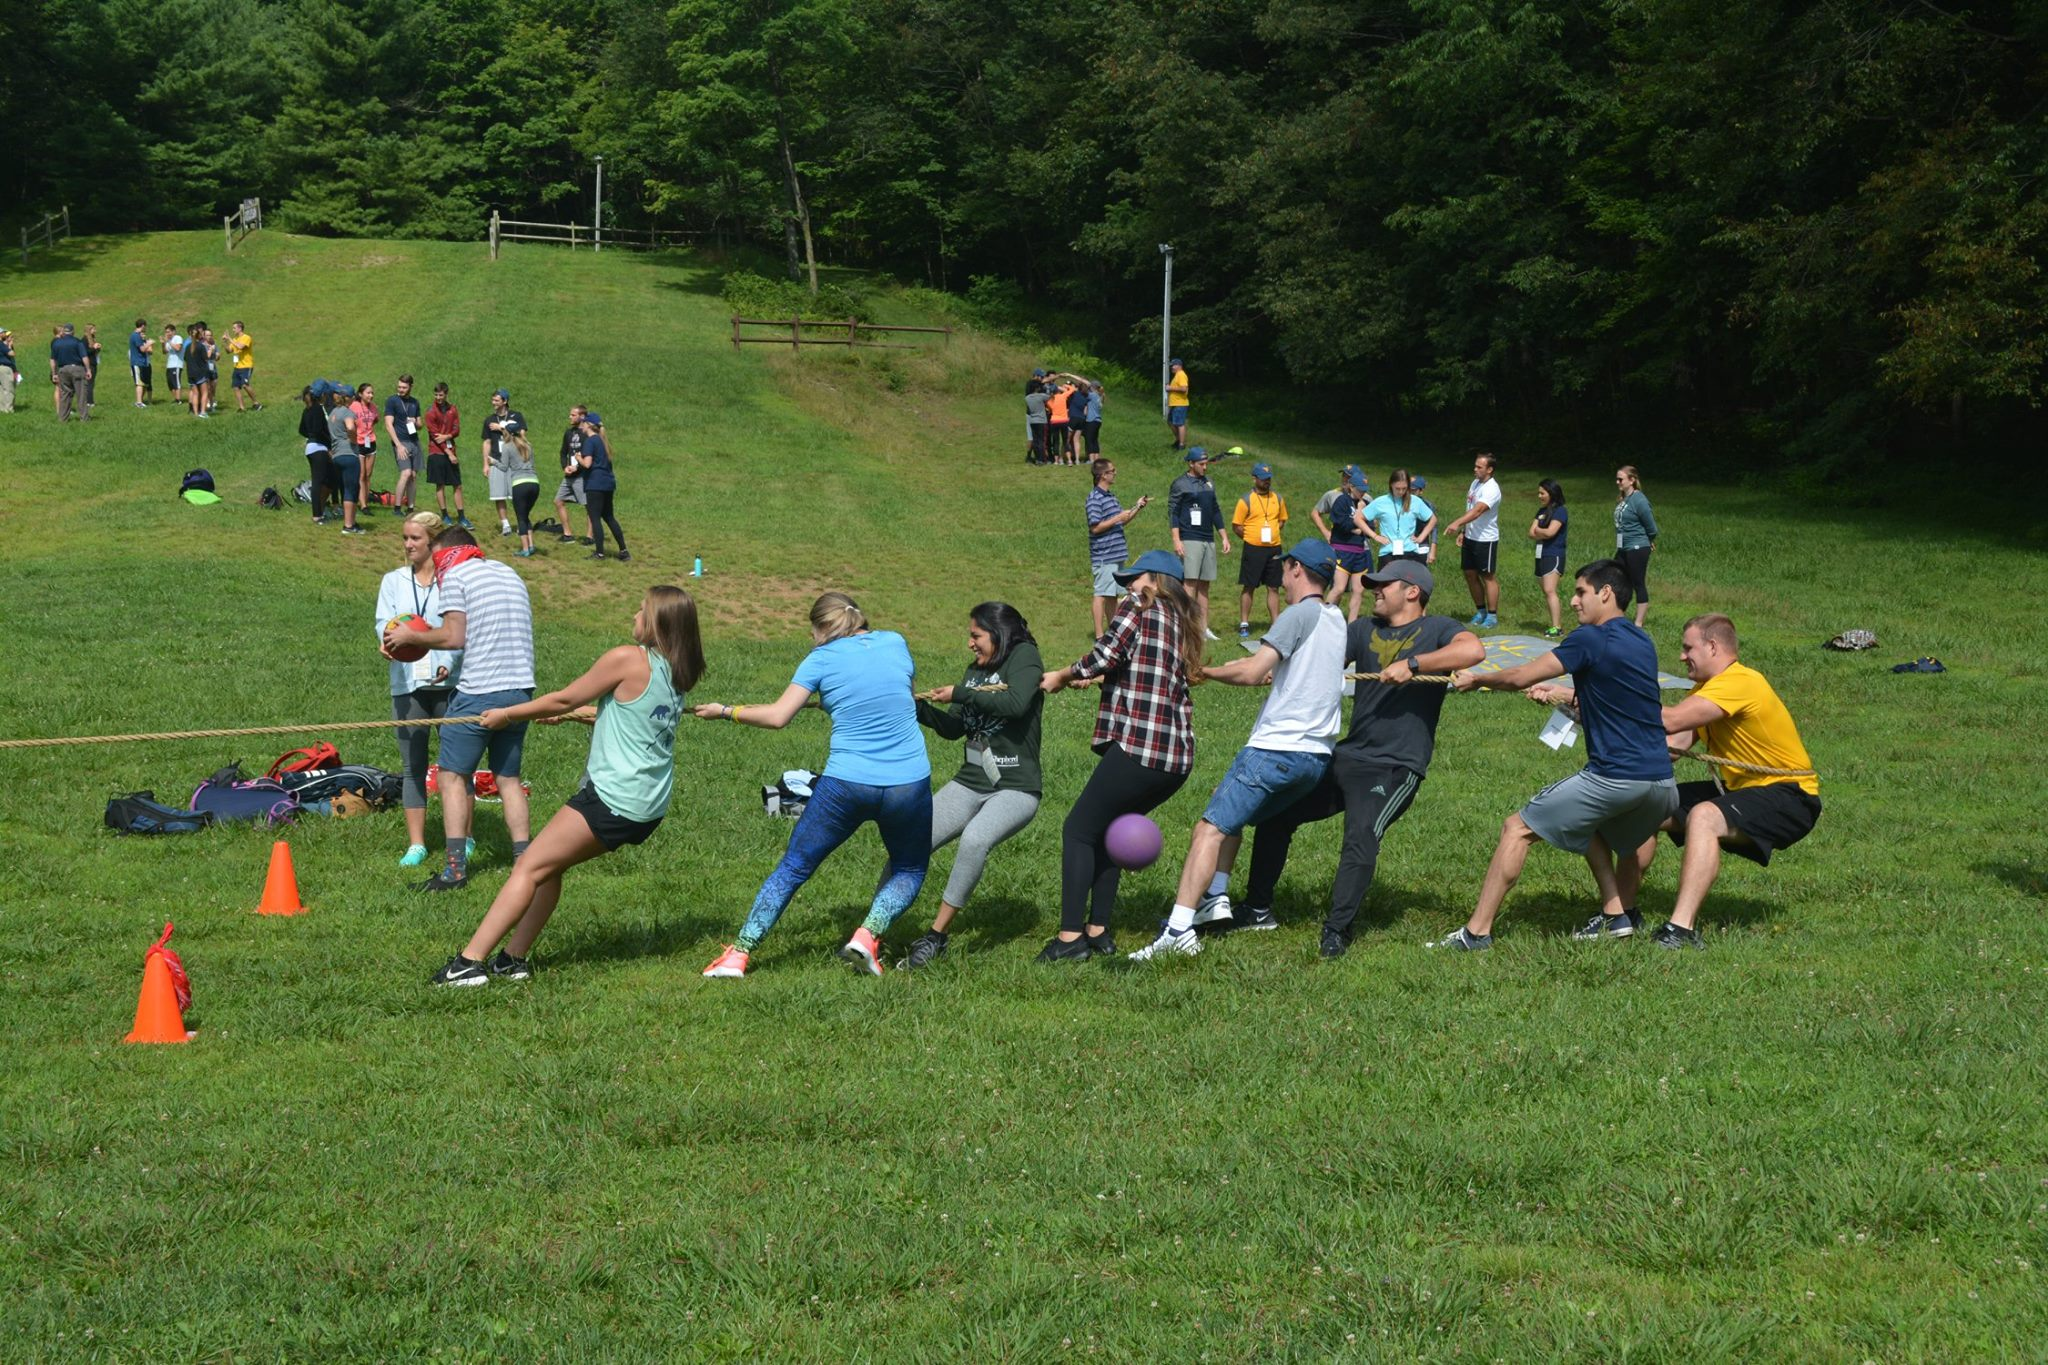 First-year medical students work on team building with a game of tug-of-war